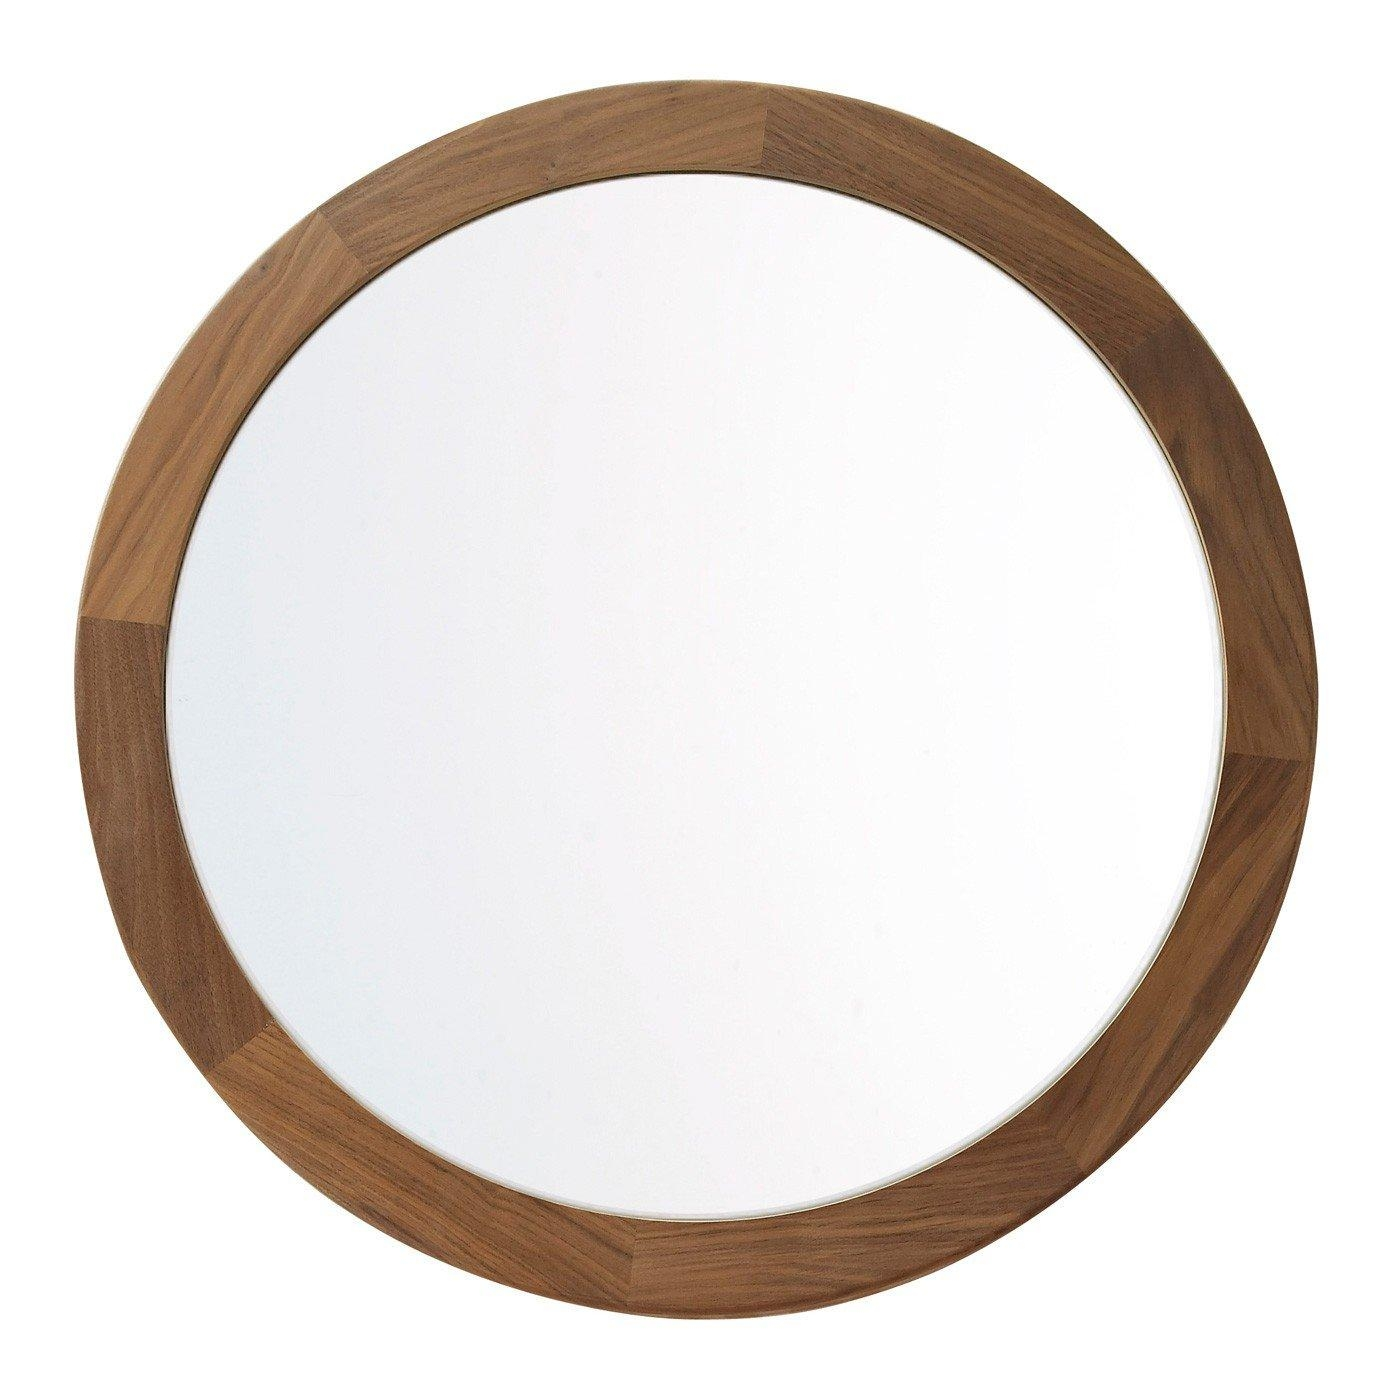 Heal's Walnut Frame Round Mirror Regarding Round Mirrors (View 6 of 20)